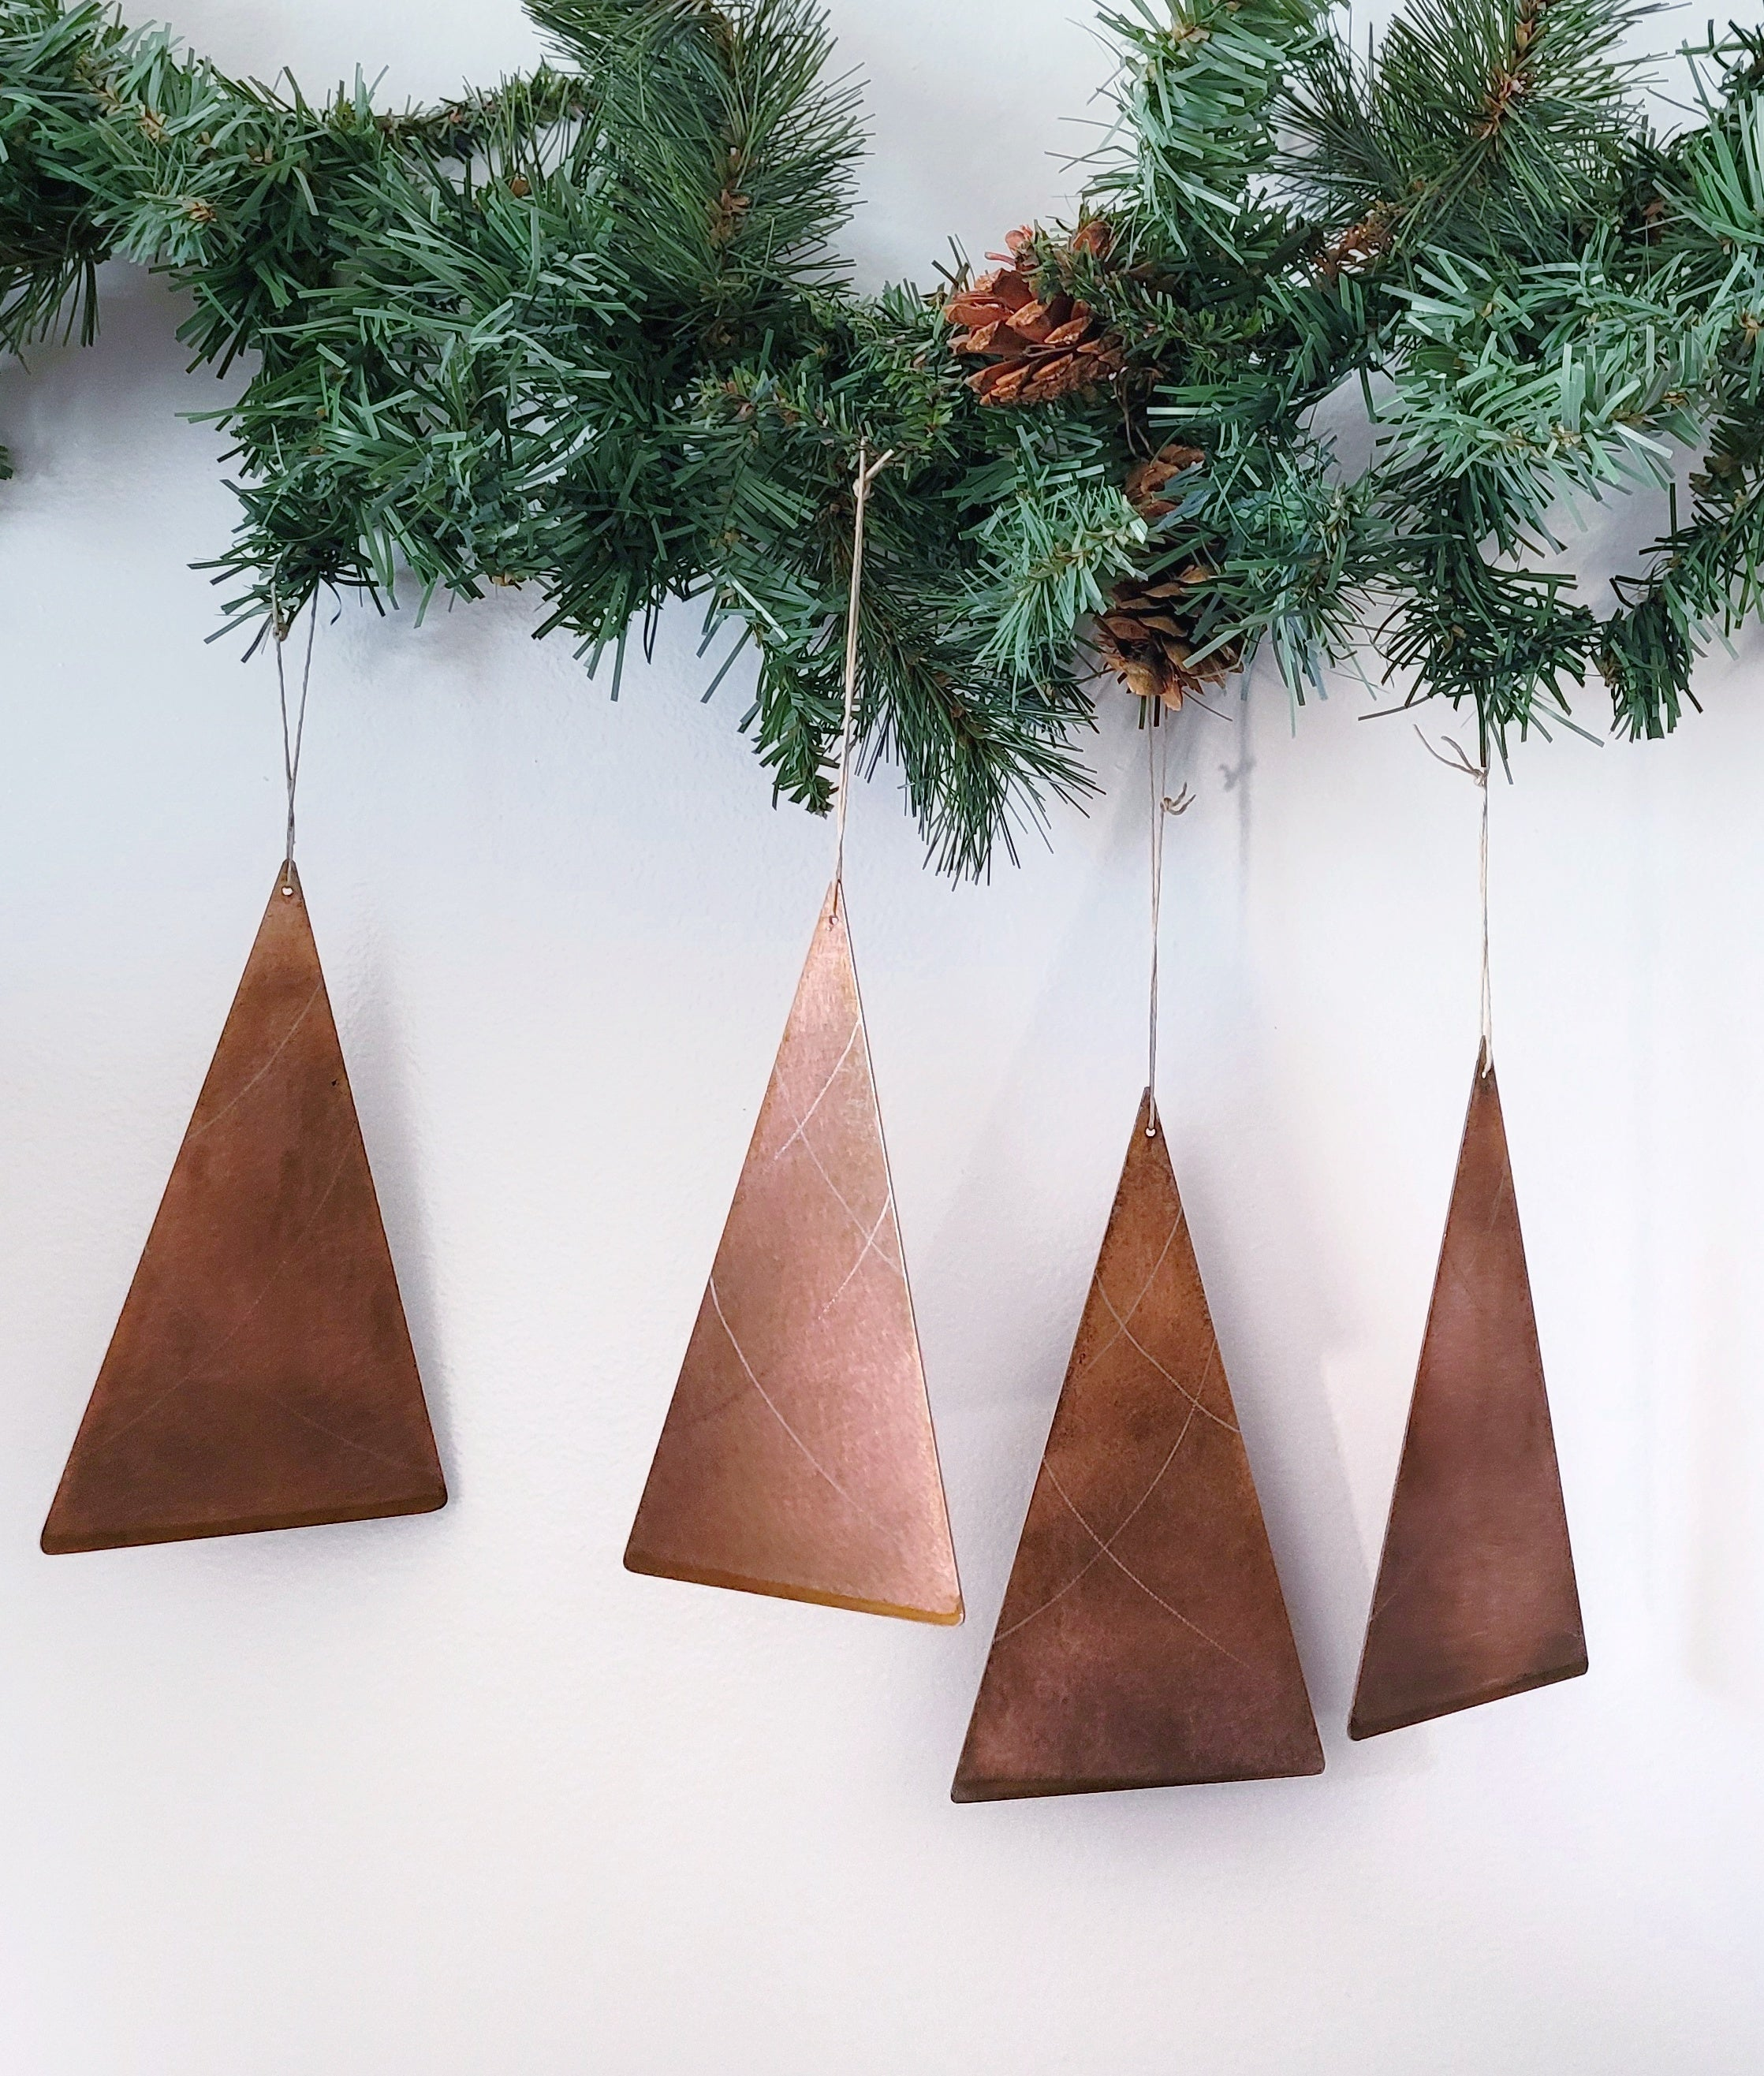 Steel Christmas Tree Ornaments